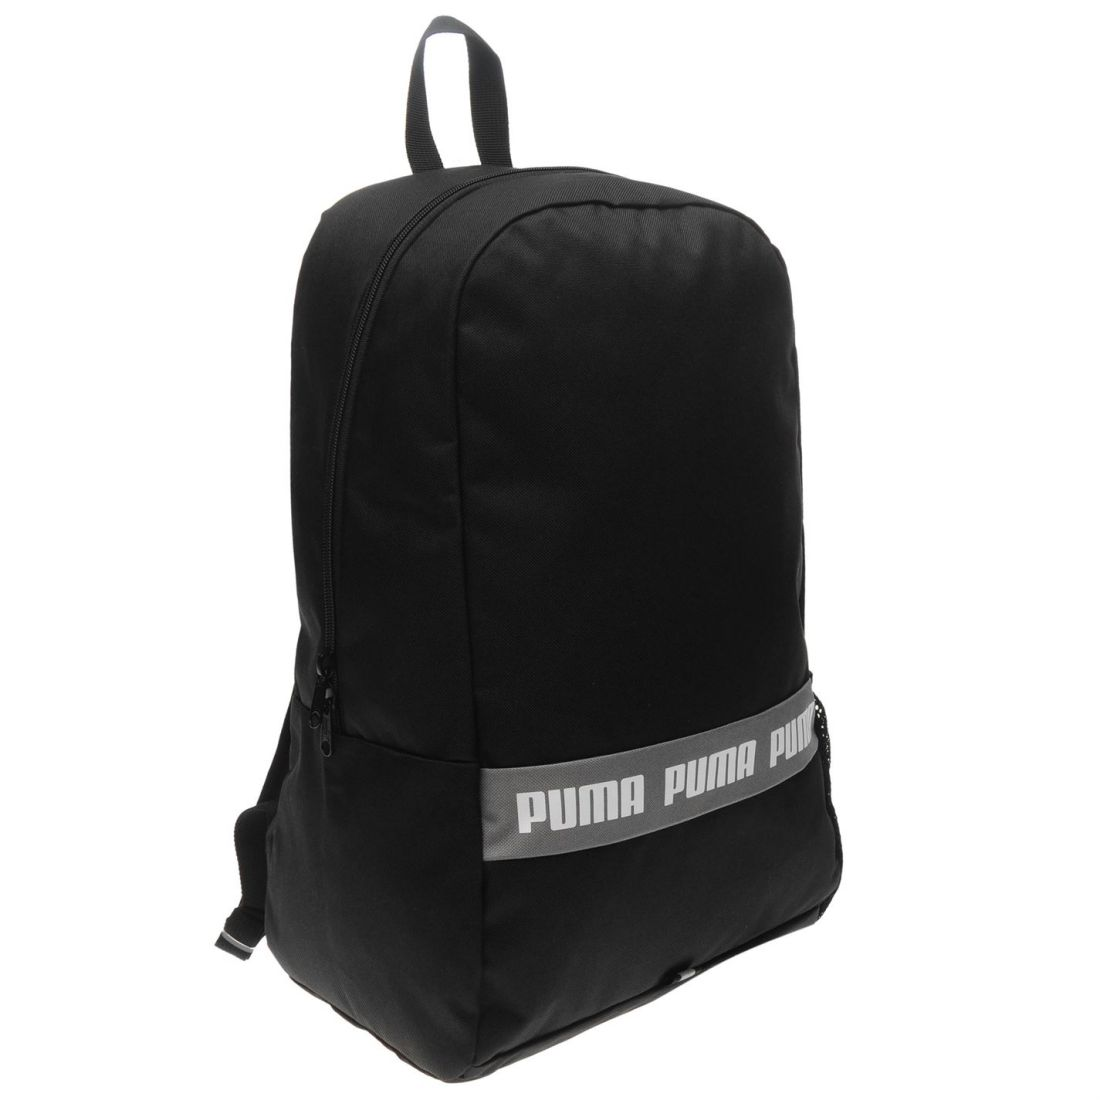 d1f1bb58a495 Details about Puma Unisex Phase Backpack Back Pack Zip Mesh